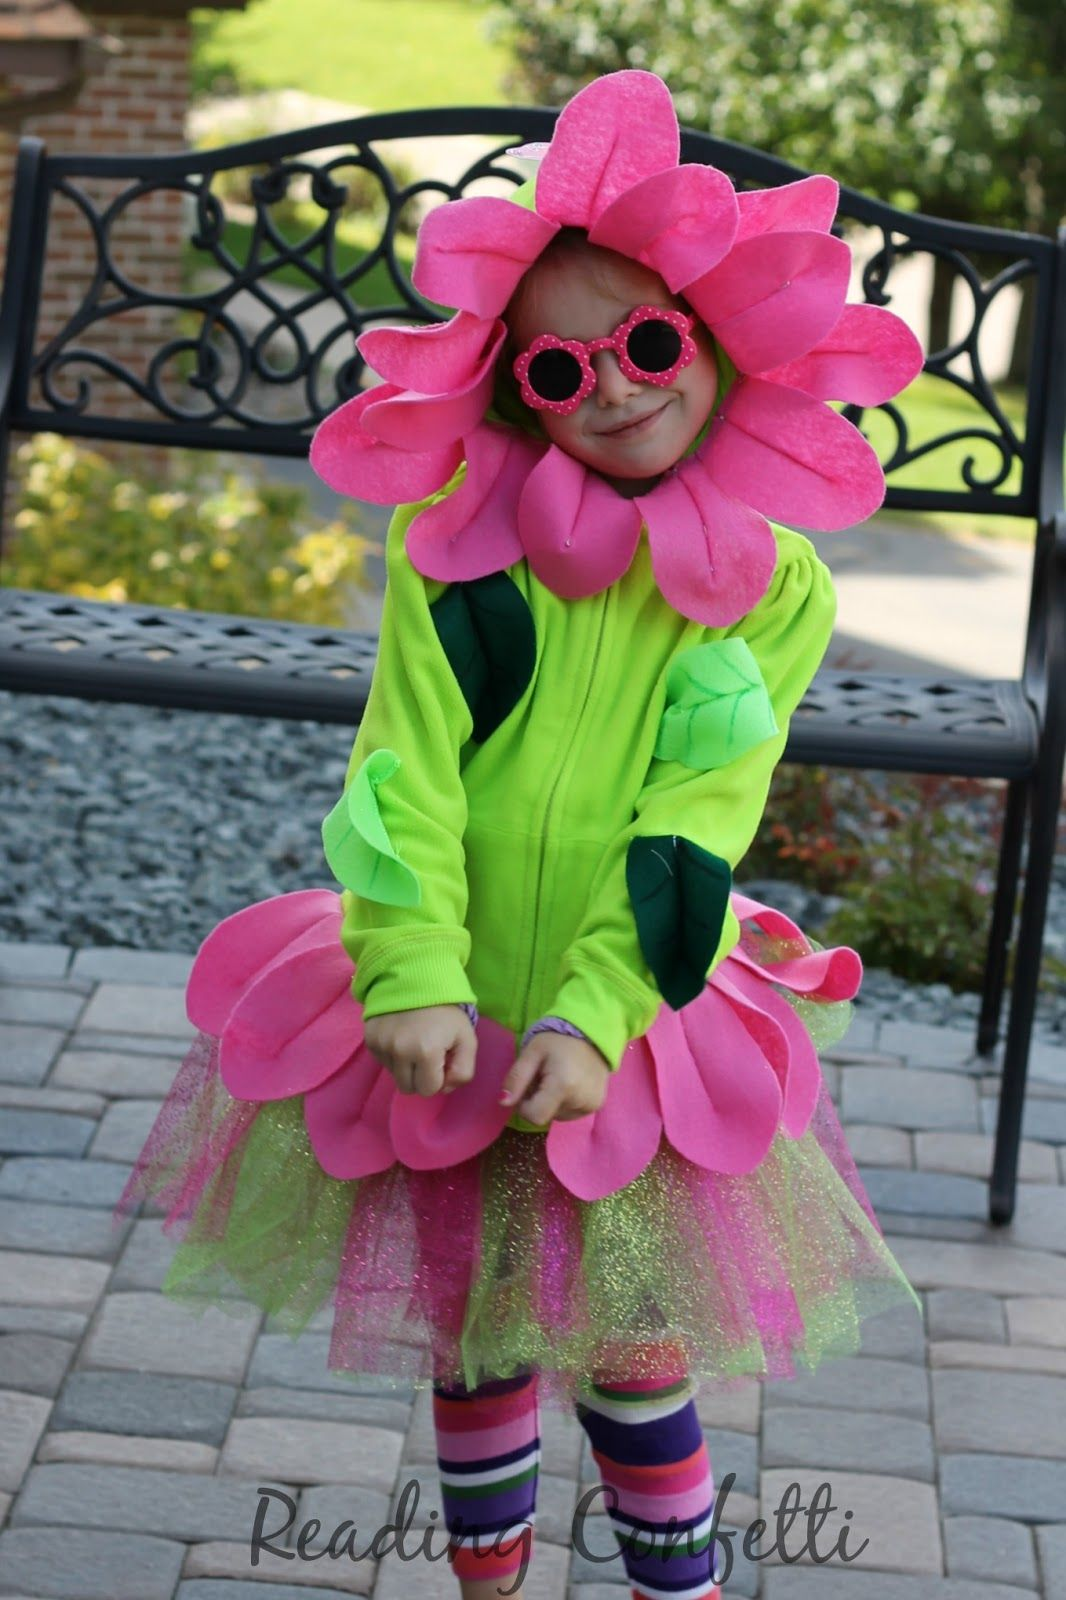 Creative Halloween Costumes to Make for Kids | Broccoli costume ...